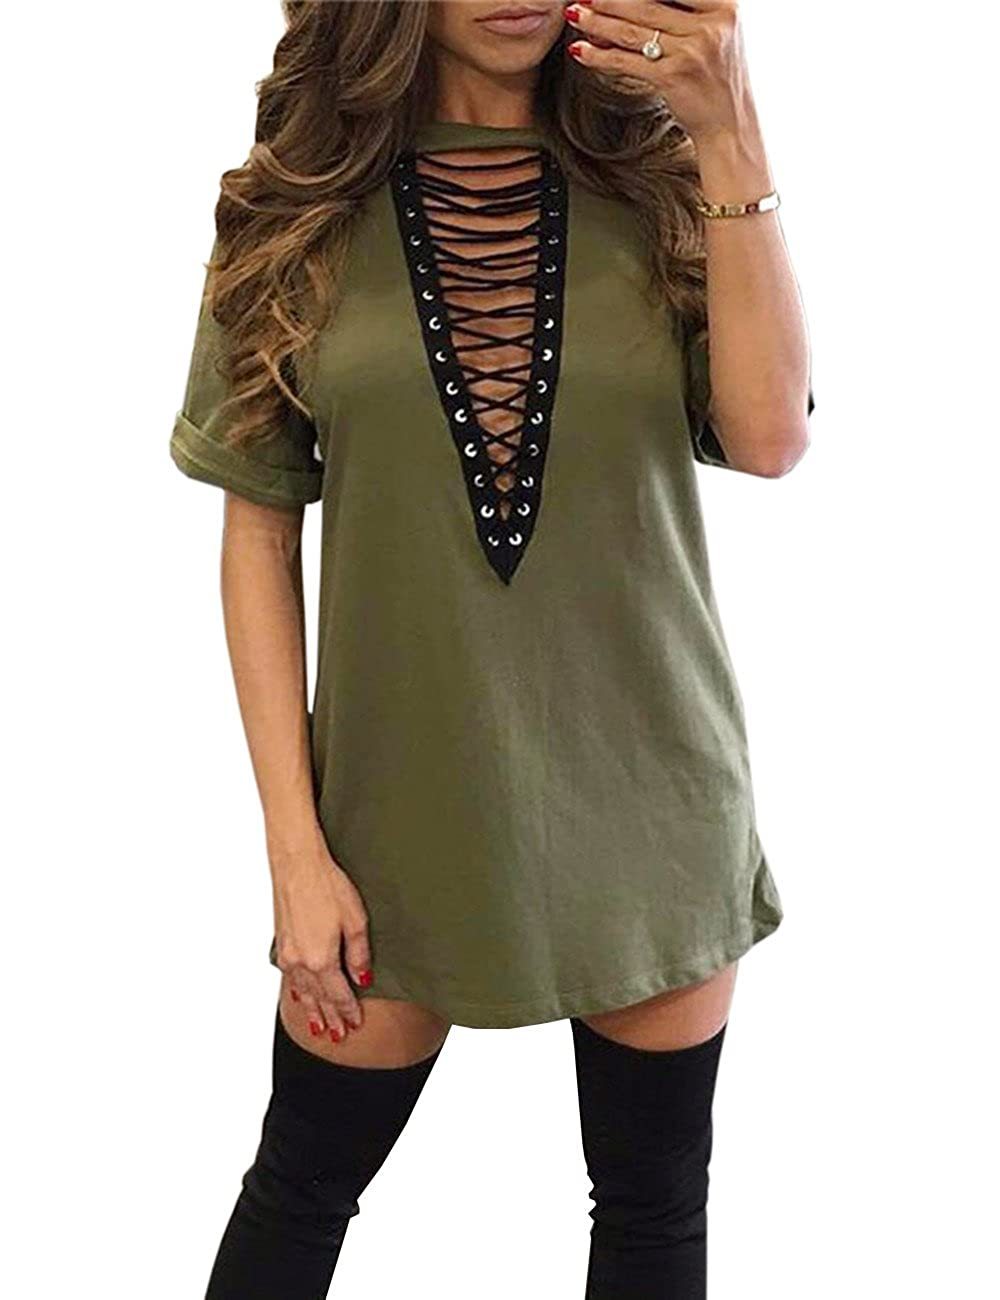 b3db49b74a7 Top 10 wholesale Lace Up Front T Shirt Dress - Chinabrands.com